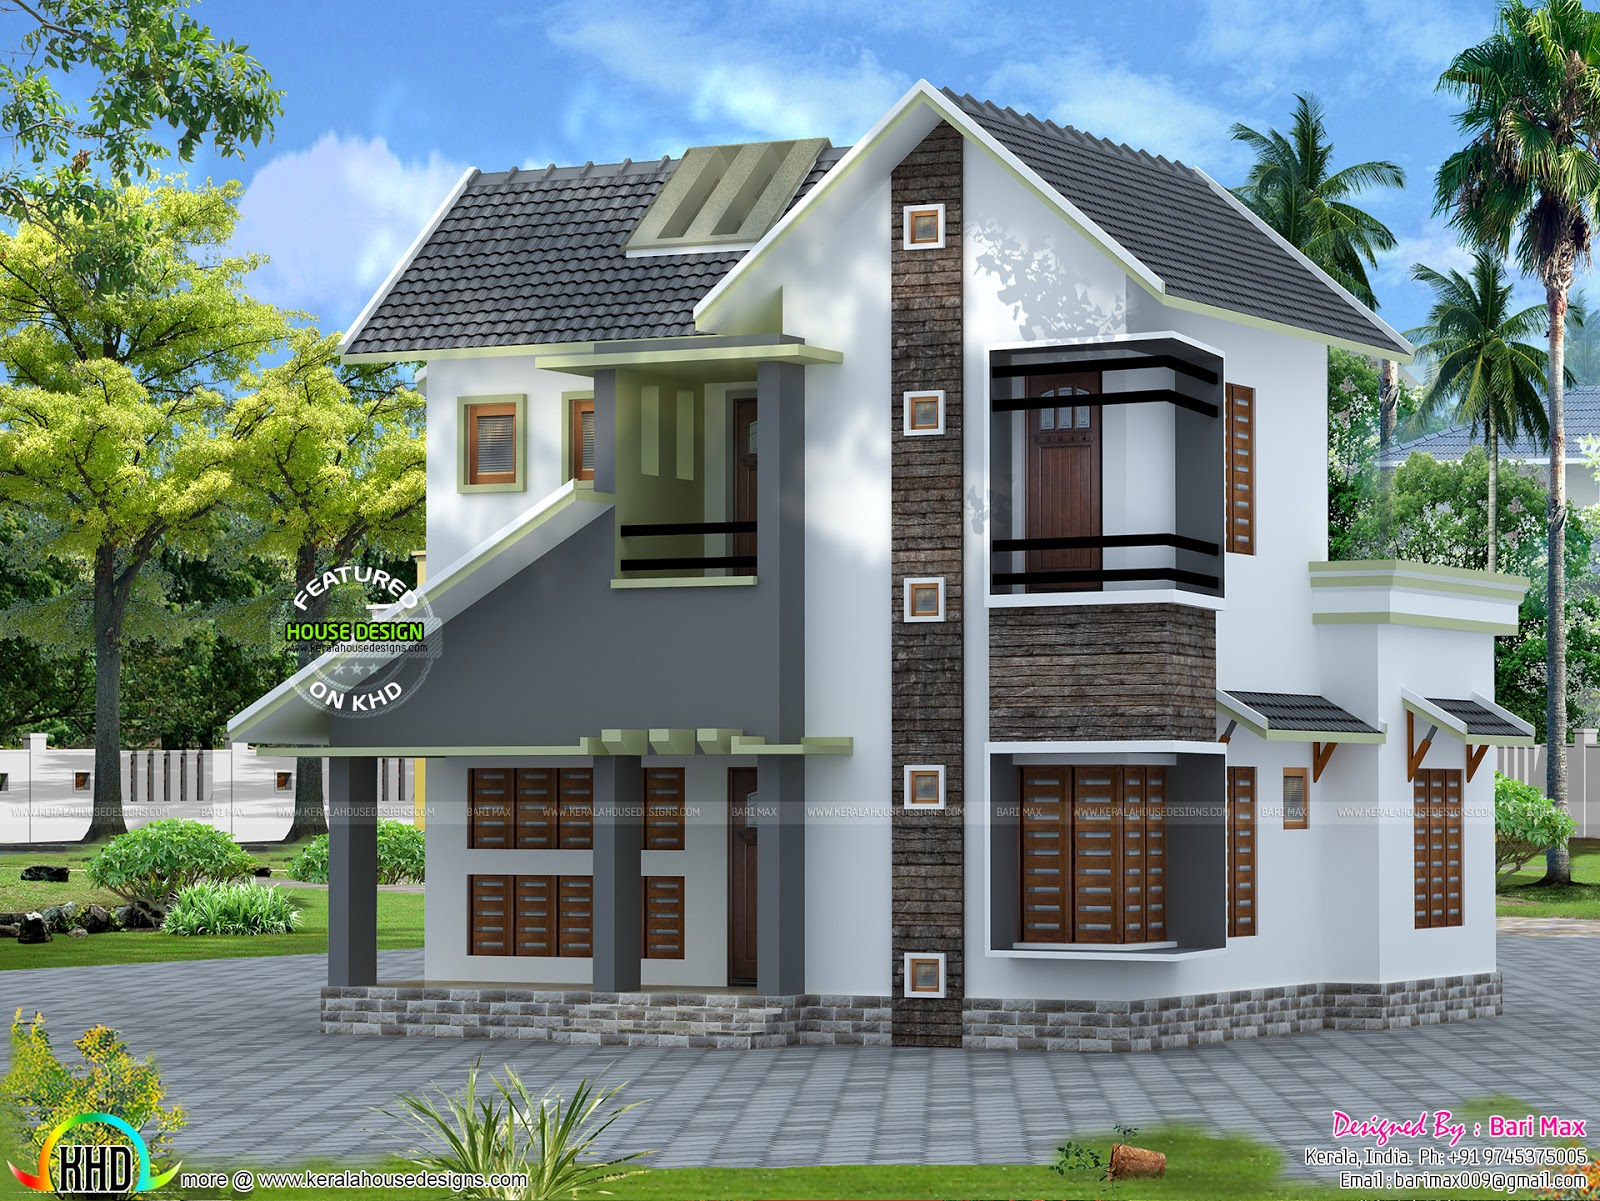 Slope roof low cost home design kerala home design and for Low cost house plans with photos